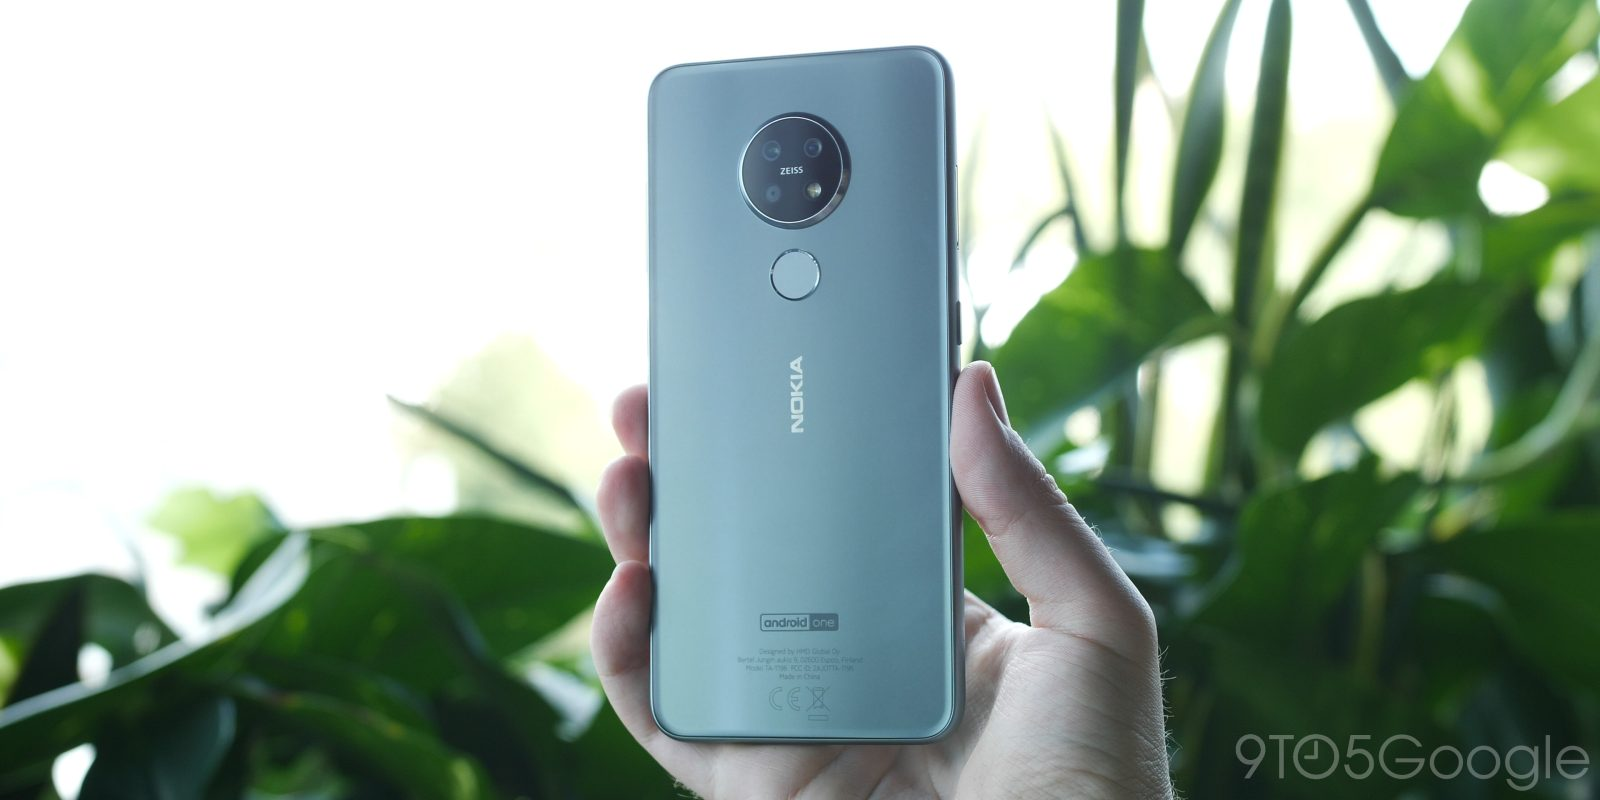 The Nokia 6.2 is now available in the US priced at $249